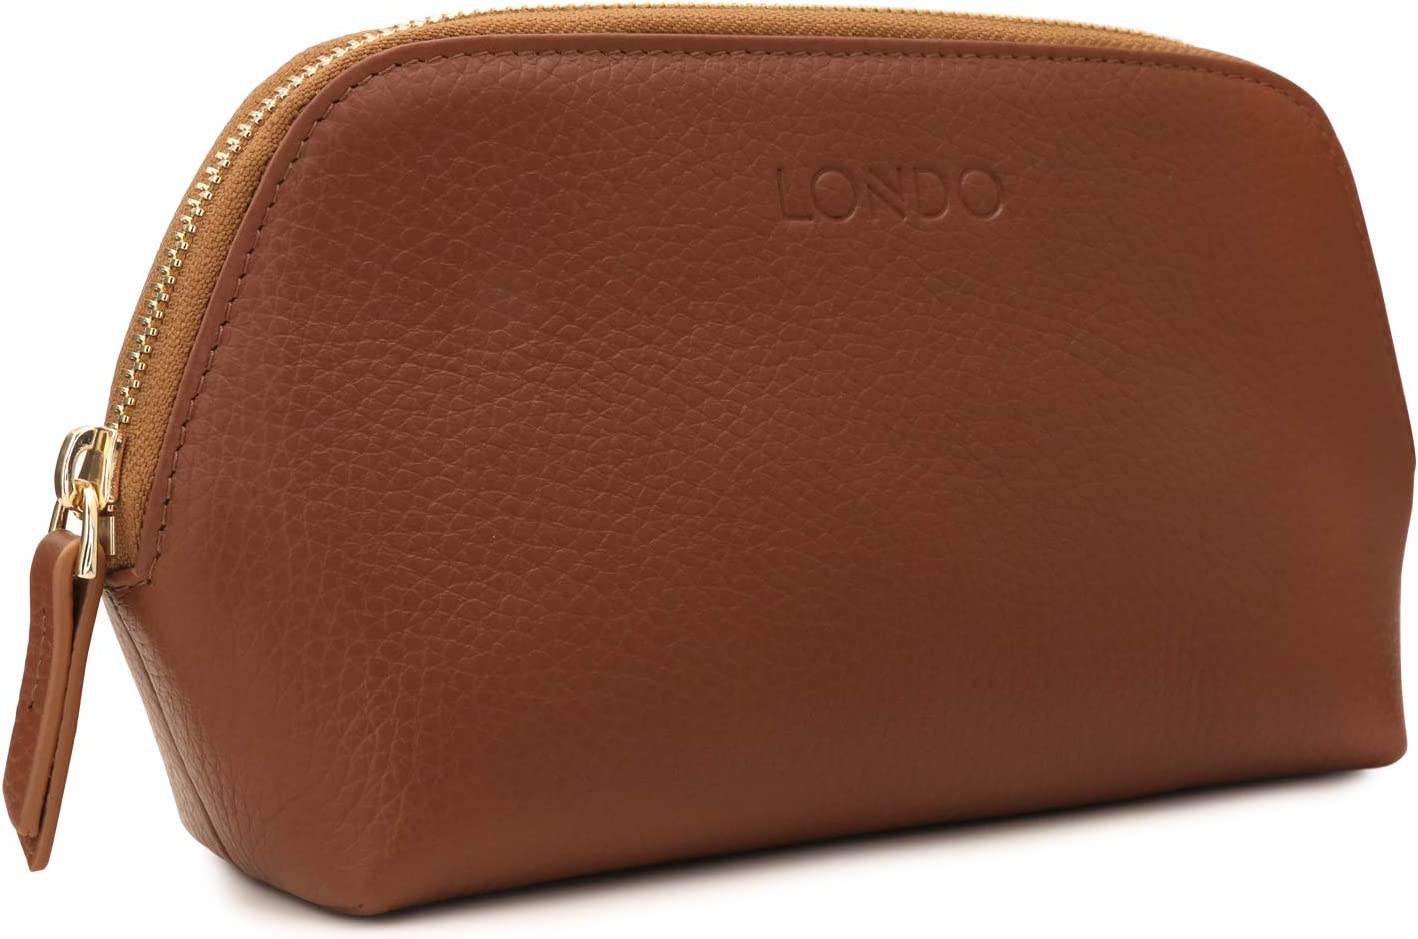 Londo Genuine Leather Makeup Bag Cosmetic Pouch Travel Organizer Toiletry Clutch (Light Brown)